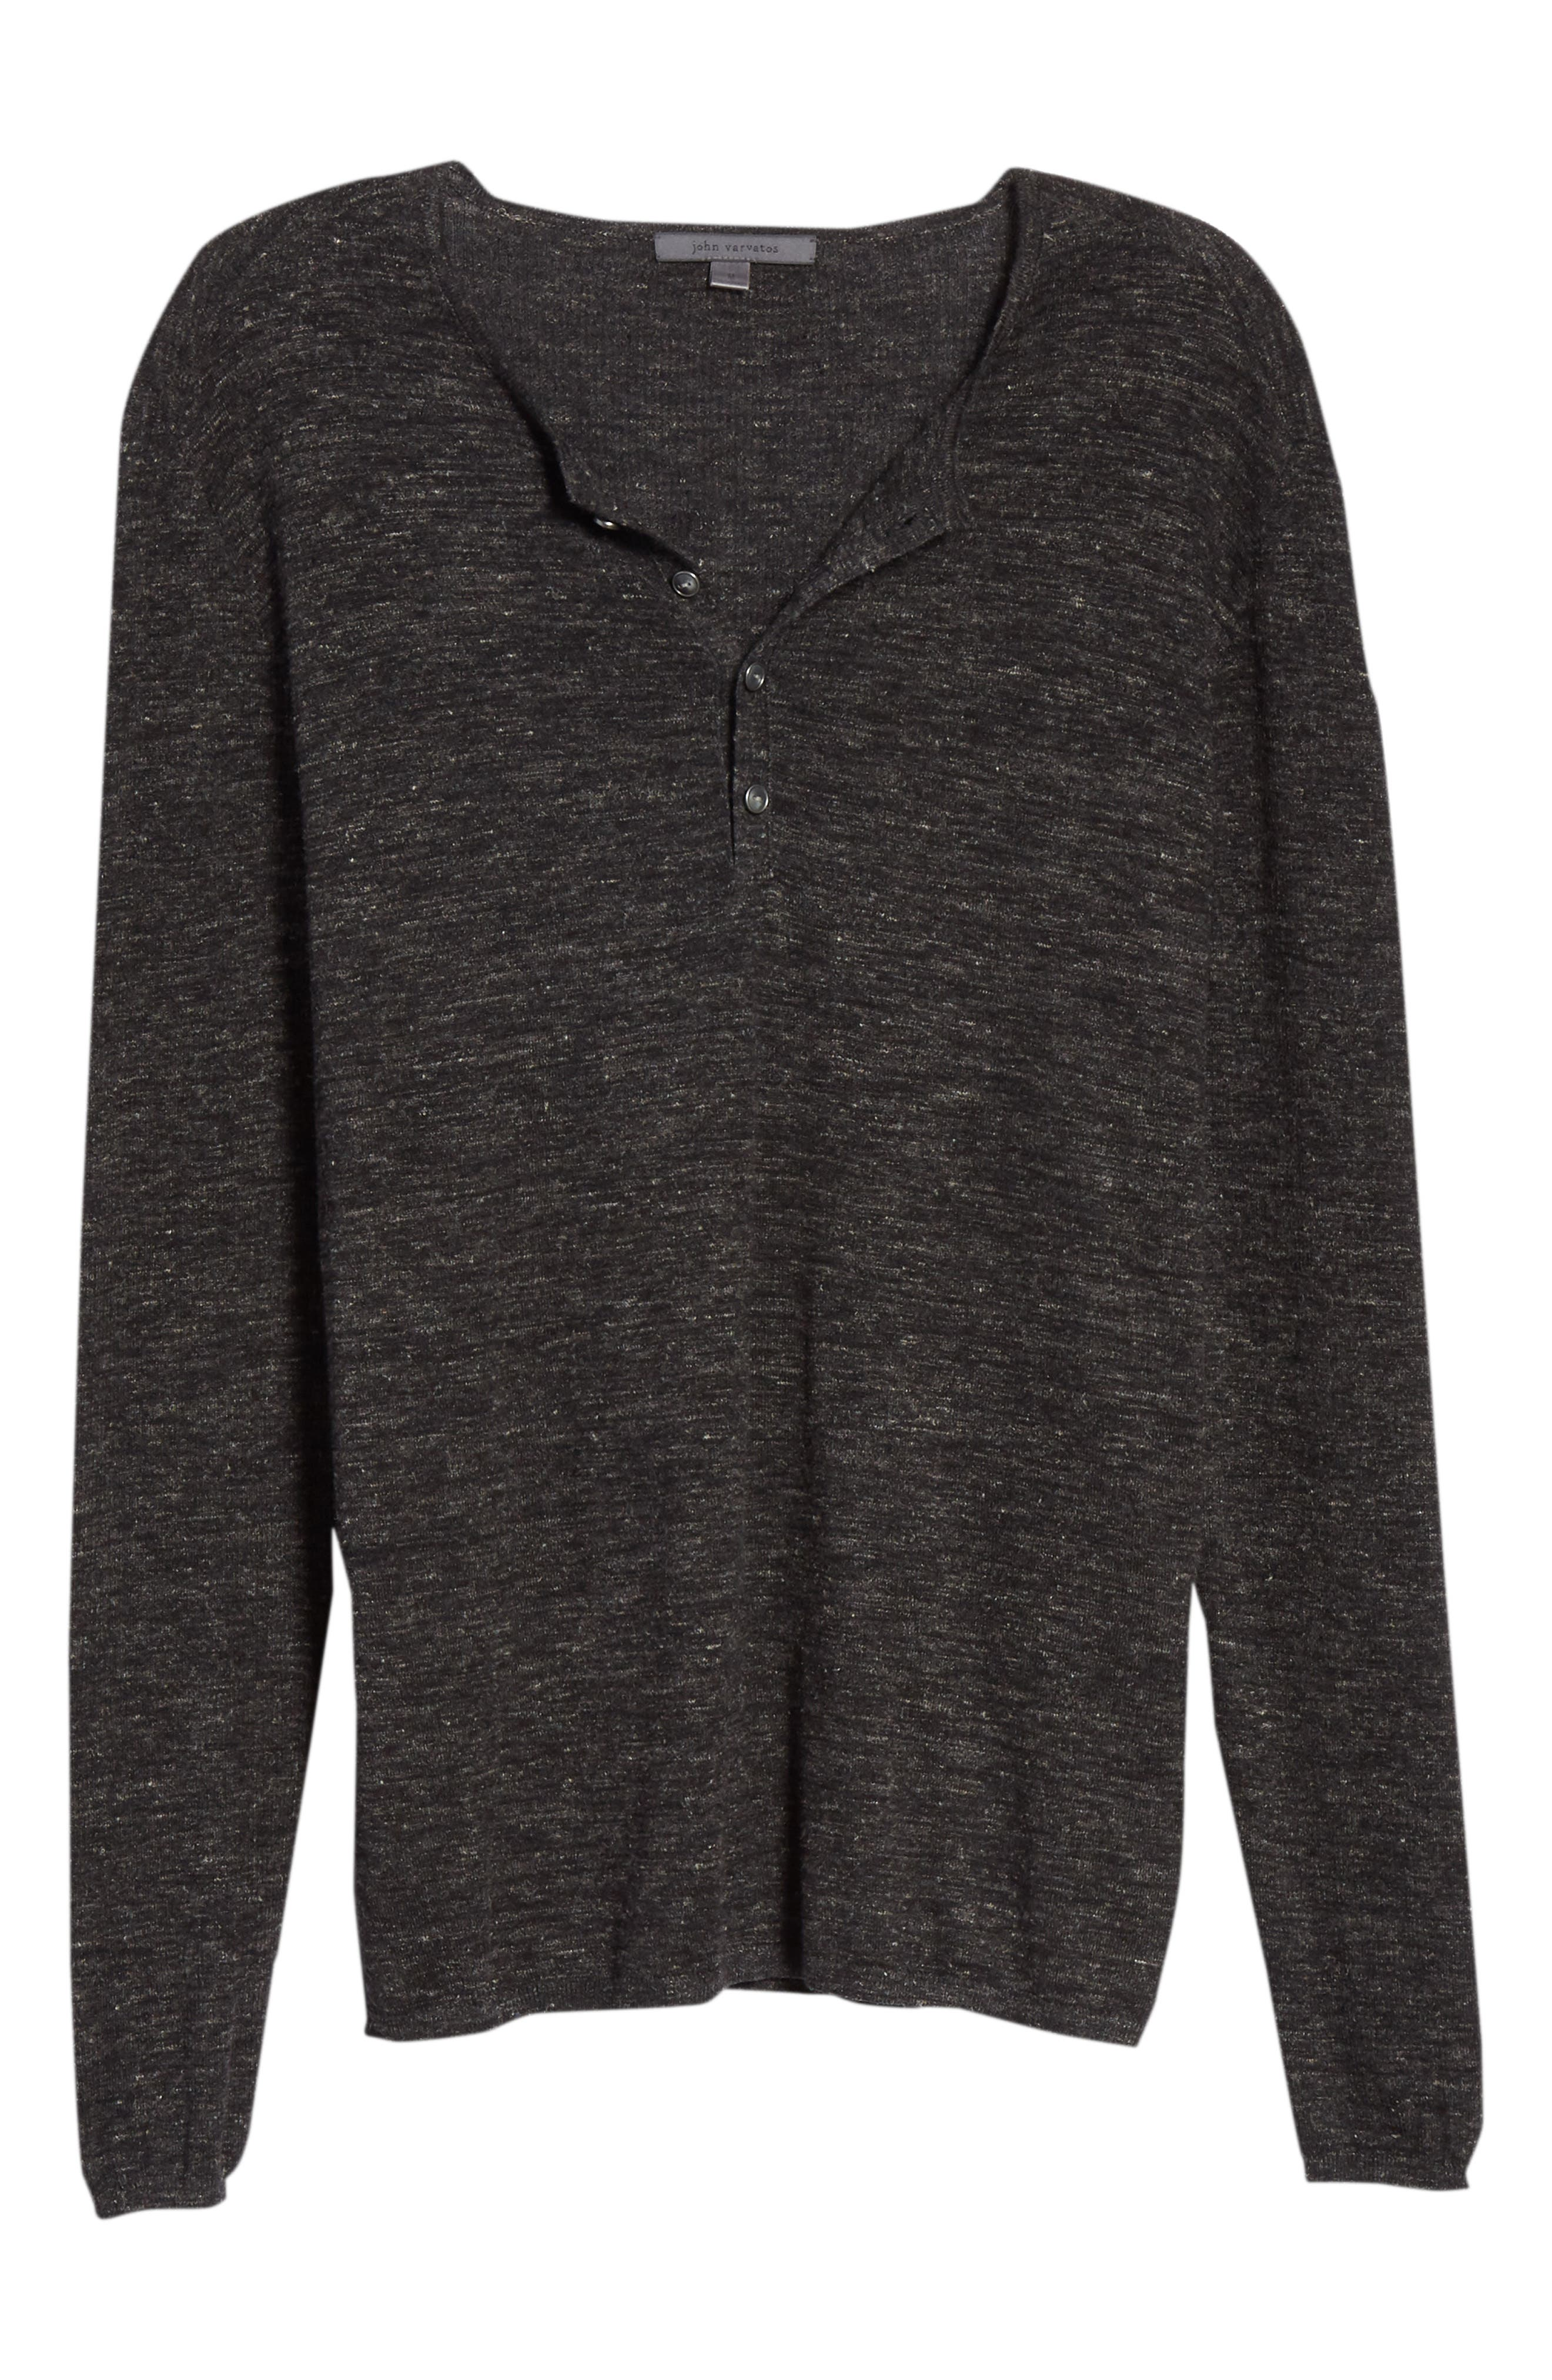 Mélange Henley Sweater,                             Alternate thumbnail 6, color,                             DARK CHARCOAL